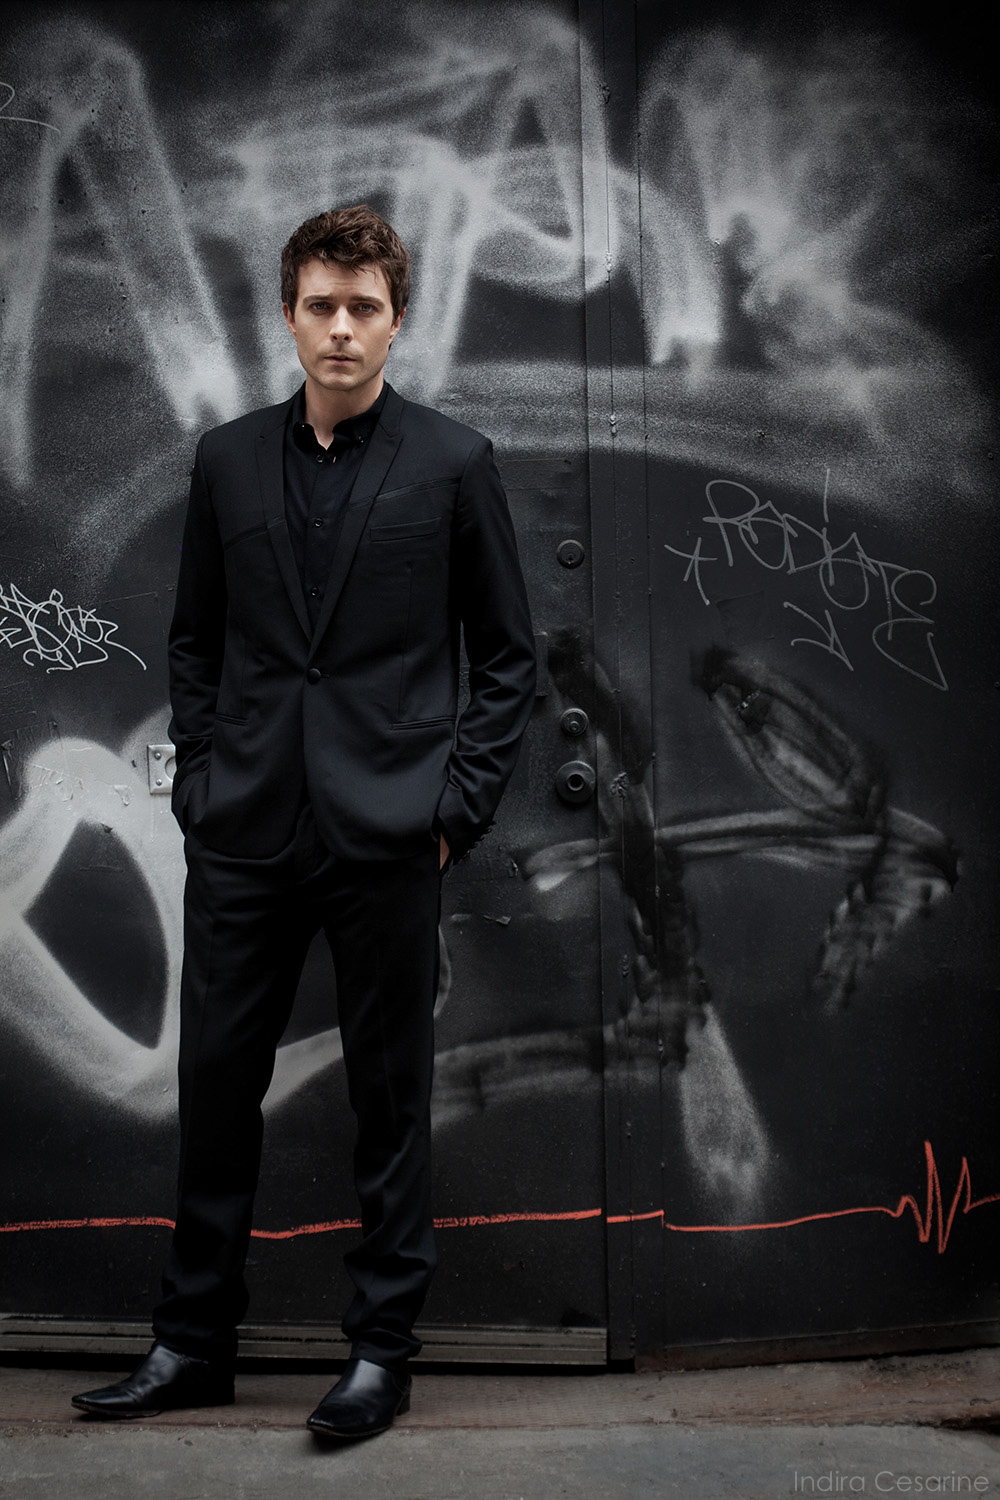 Noah-Bean-Photography-by-Indira-Cesarine-001.jpg